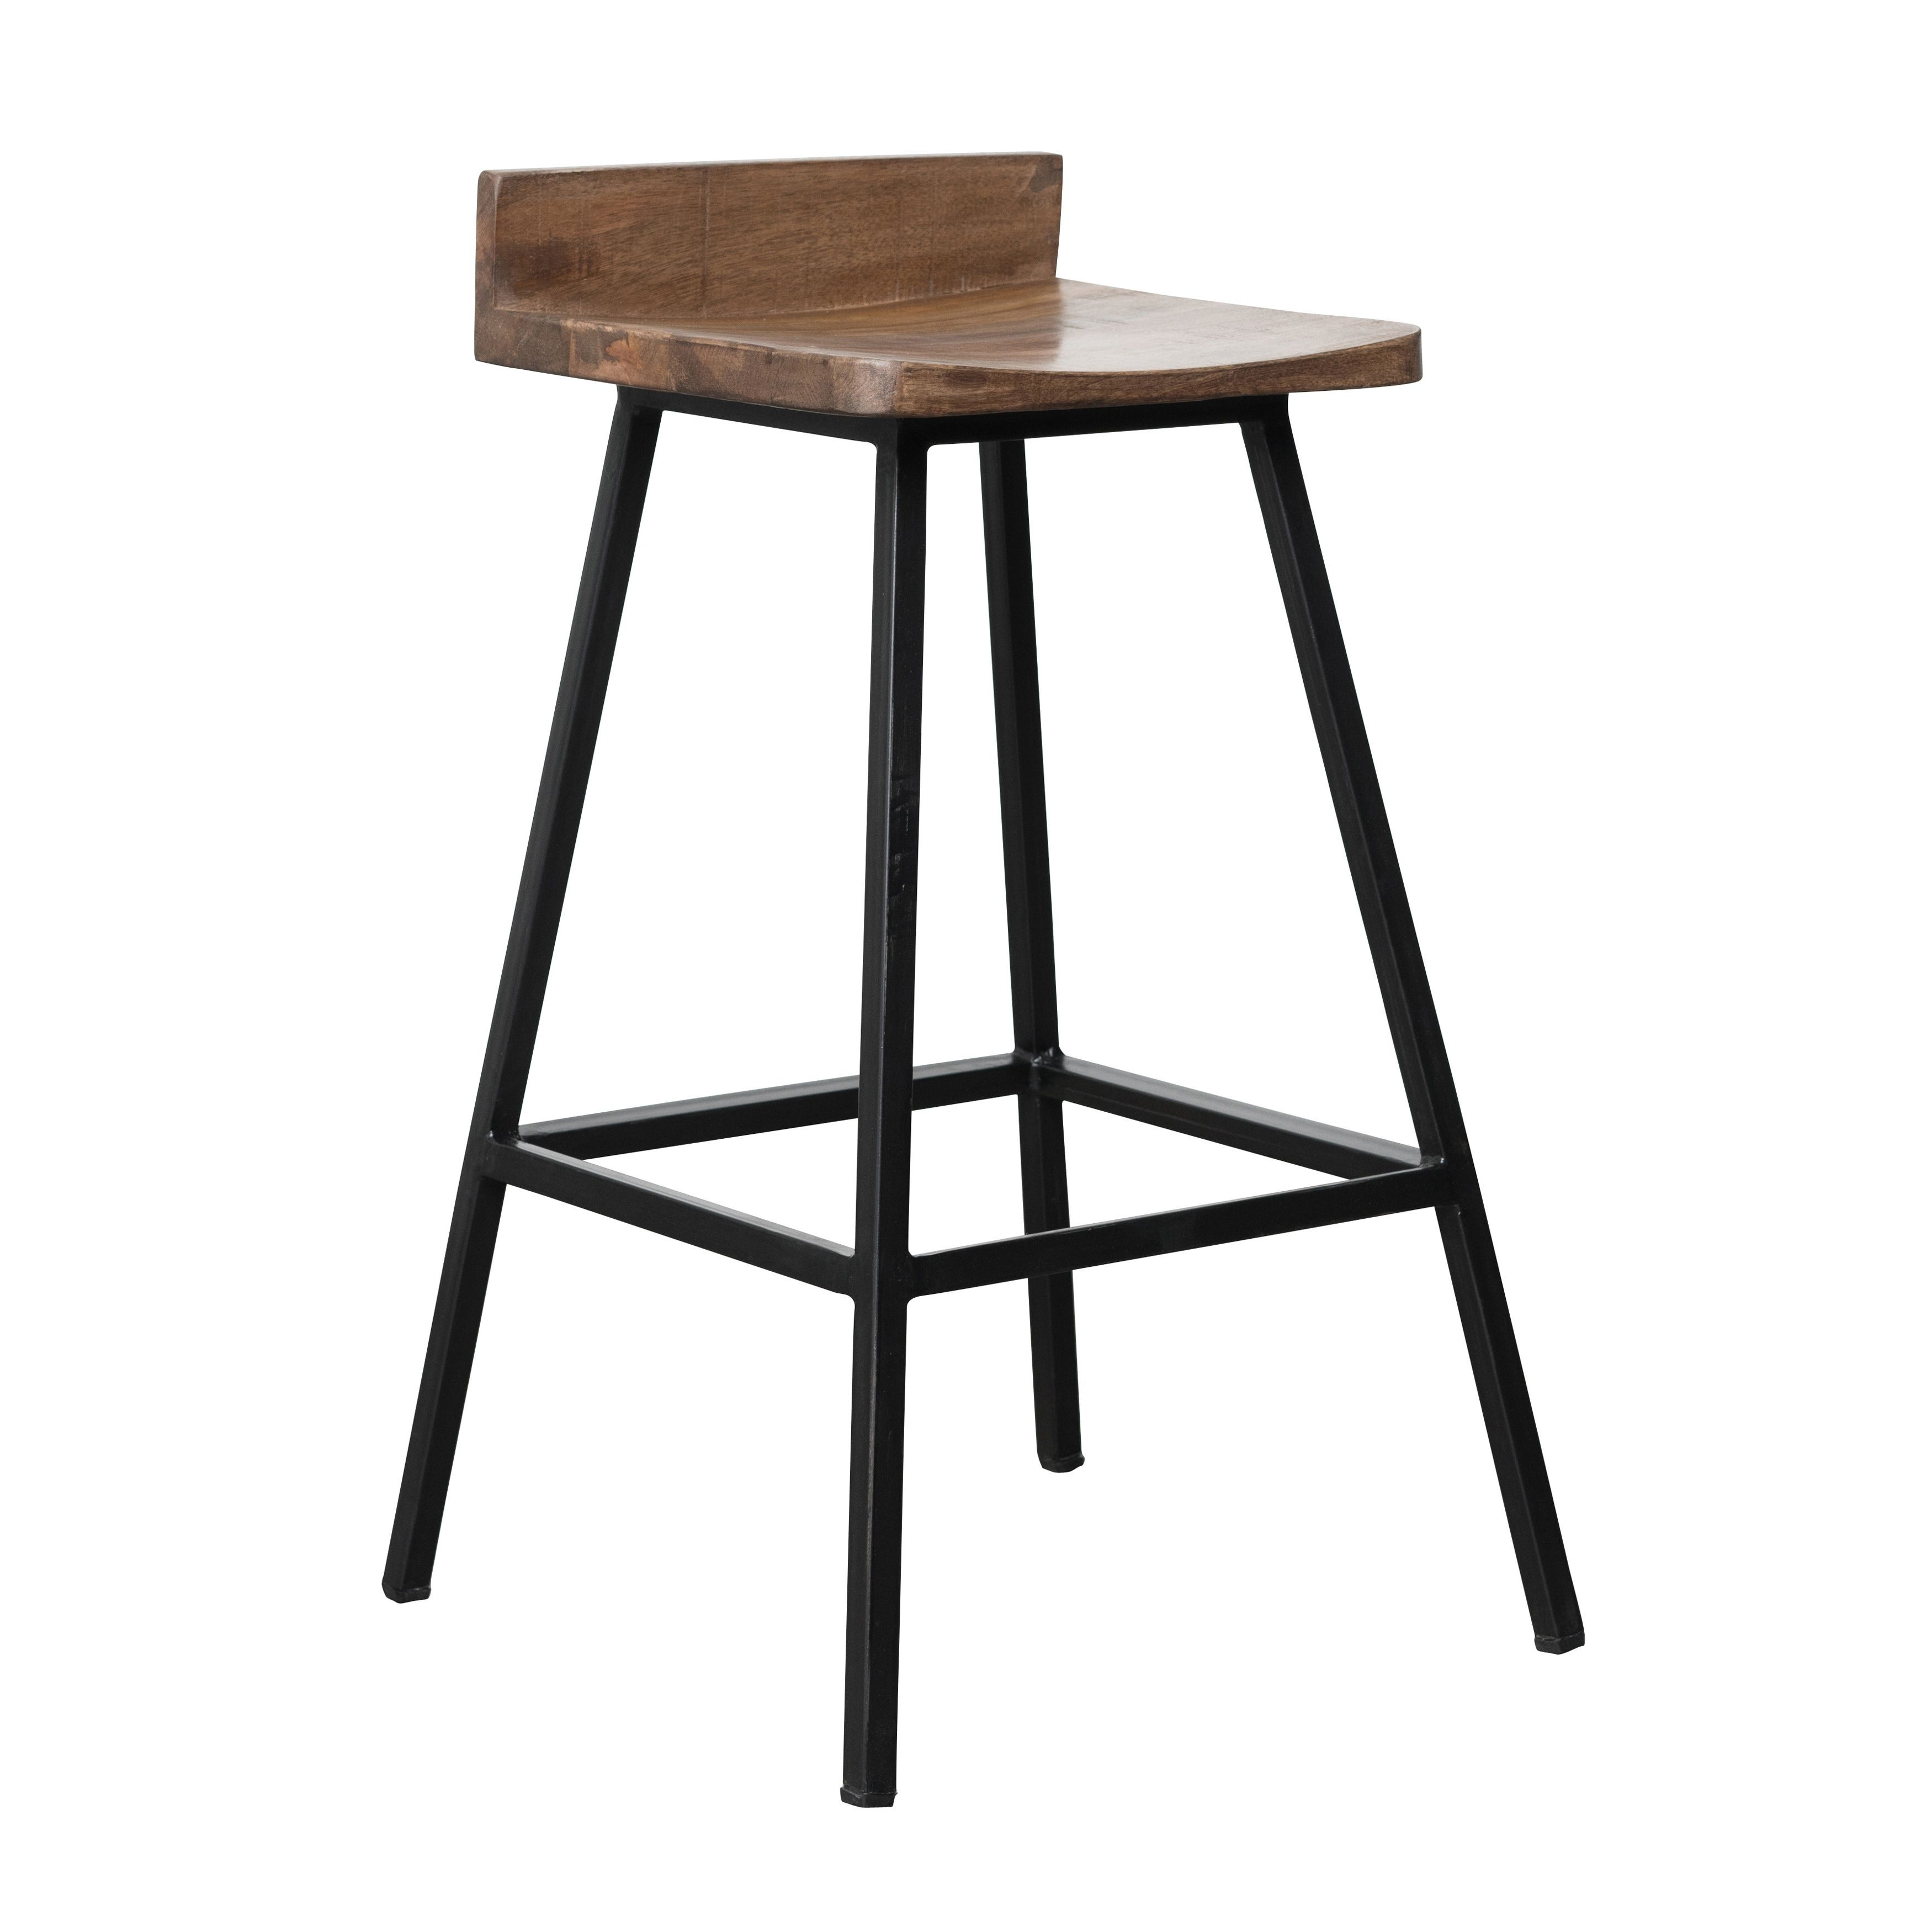 Terrific Carbon Loft Farrimond Wood 27 Inch Counter Stool Modern Unemploymentrelief Wooden Chair Designs For Living Room Unemploymentrelieforg